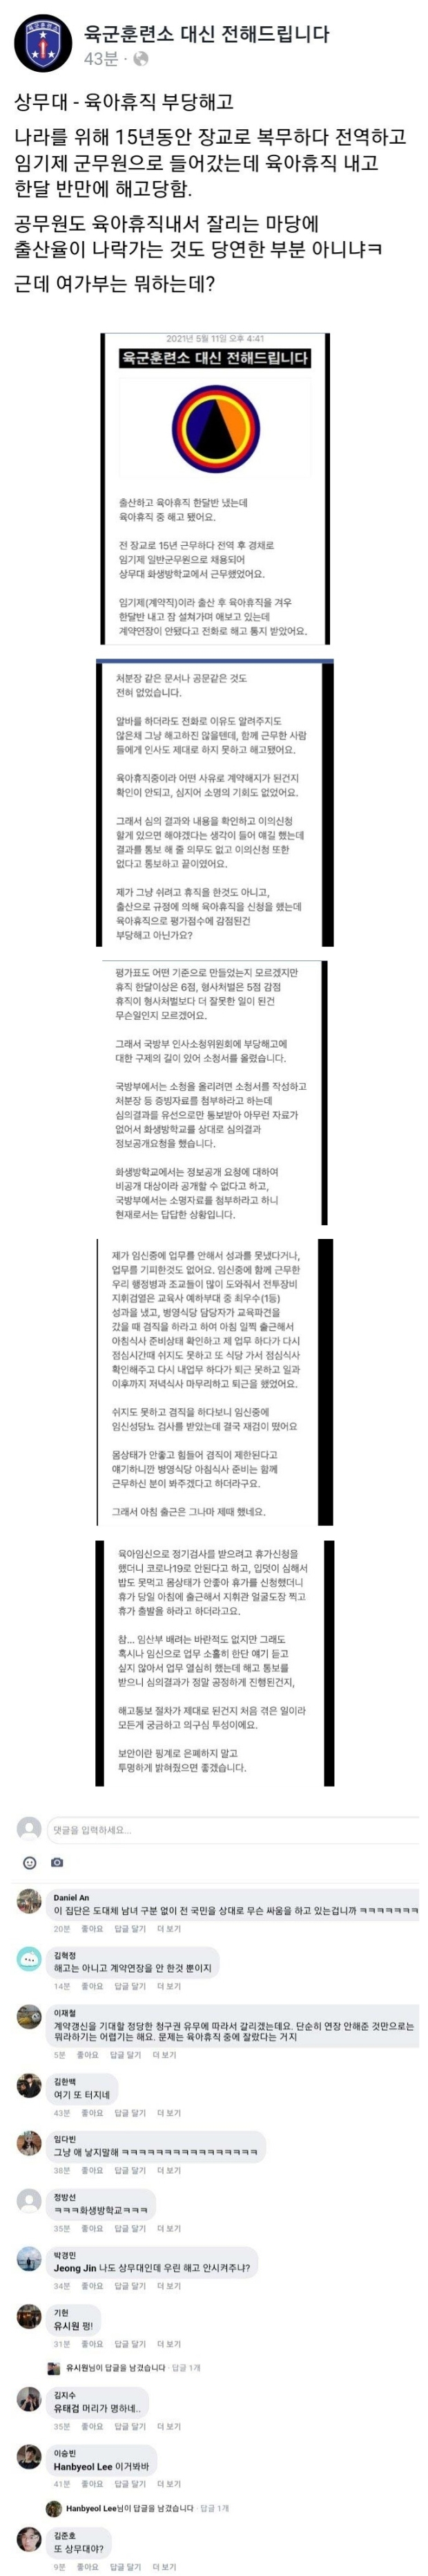 육아휴직 냈다가  해고 통지